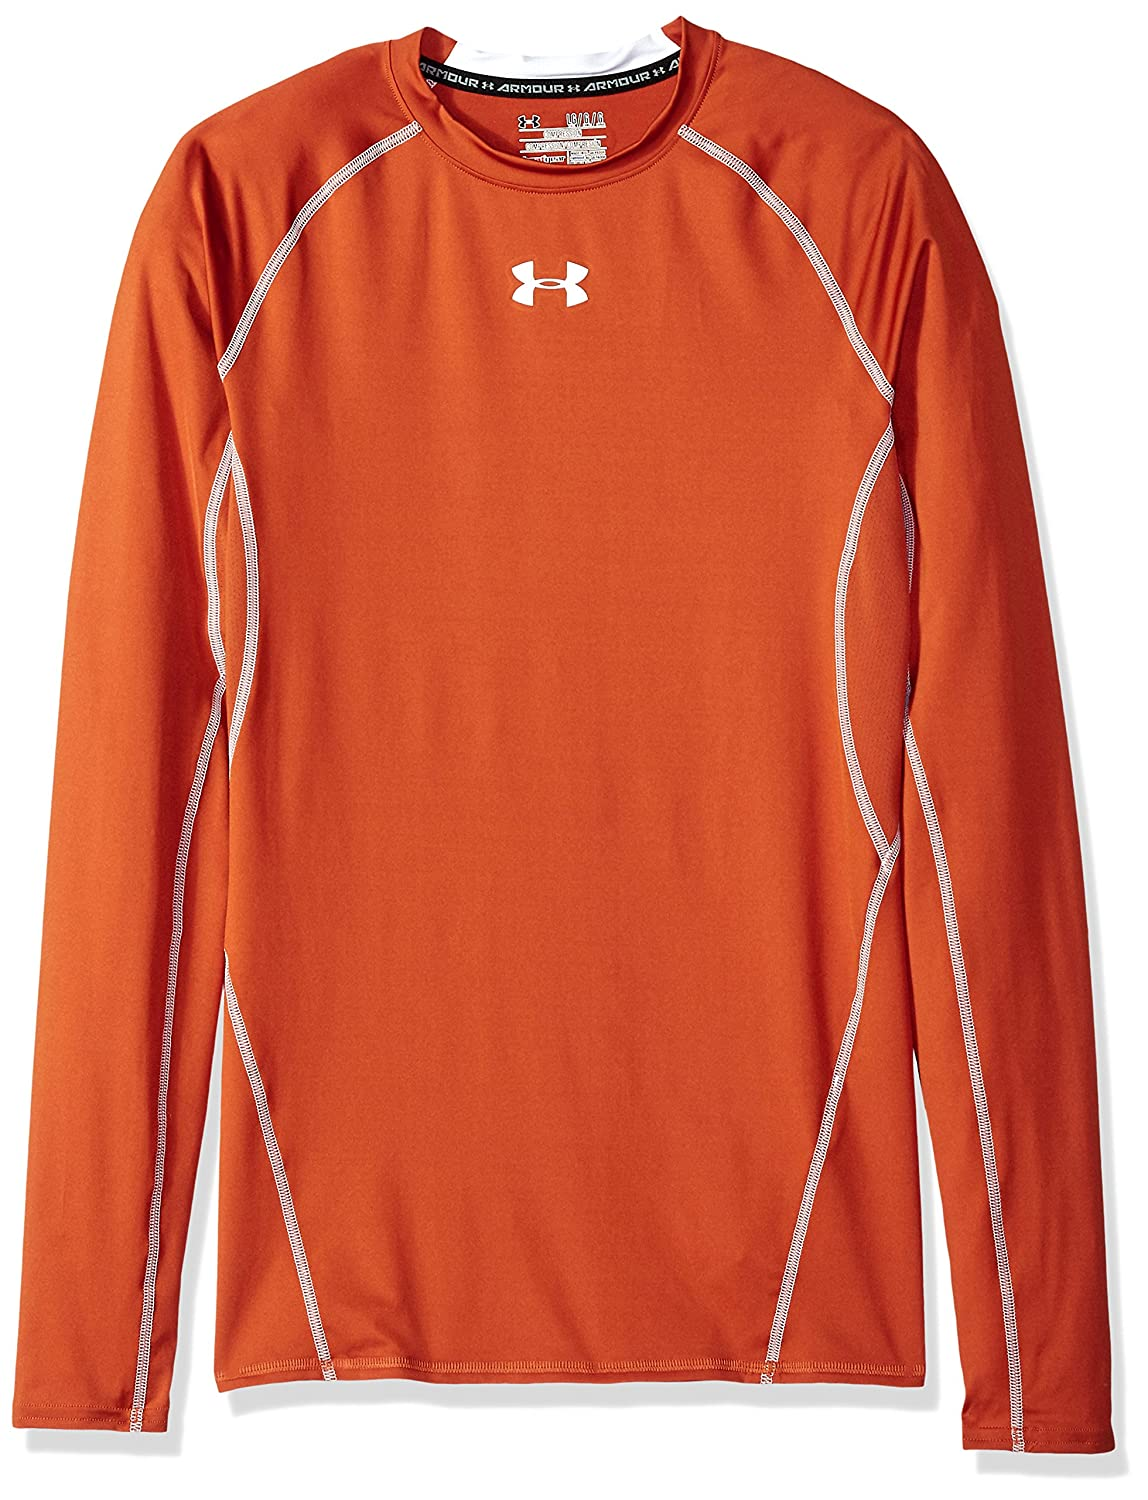 Under Armour Men's HeatGear Armour Long Sleeve Compression Shirt, Texas Orange/Weiß, XX-Large